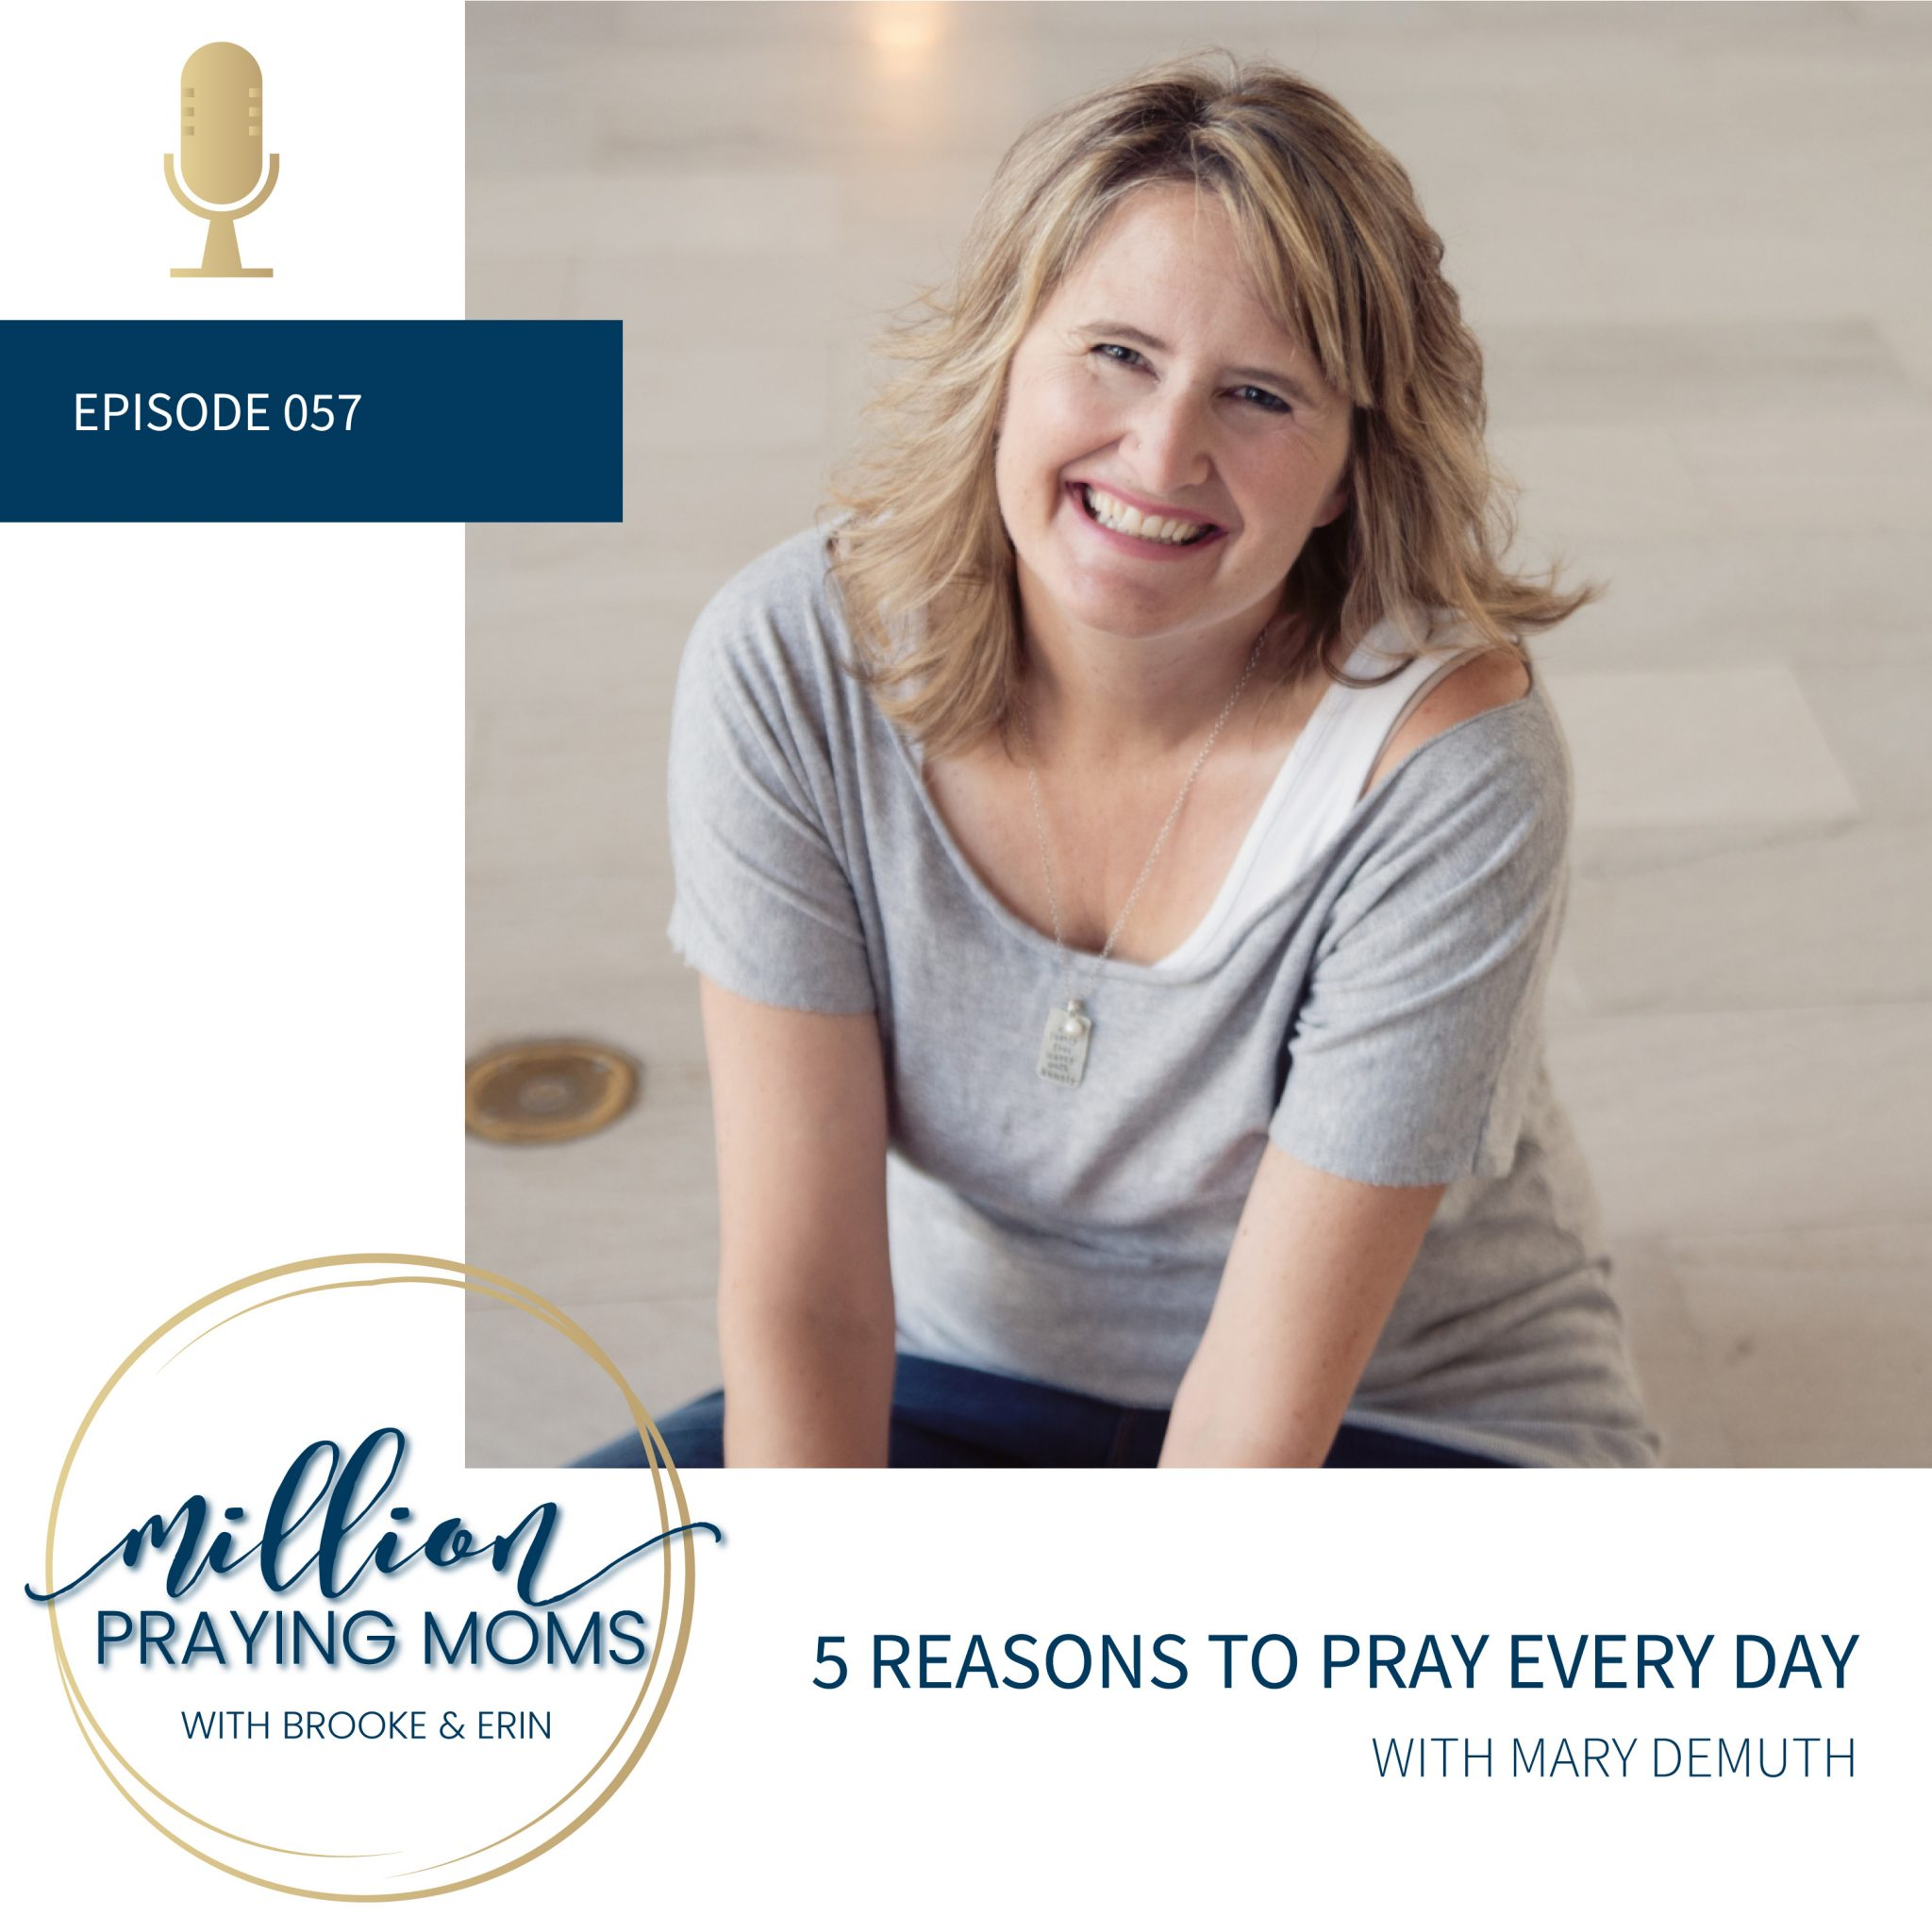 #057: 5 Reasons to Pray Every Day